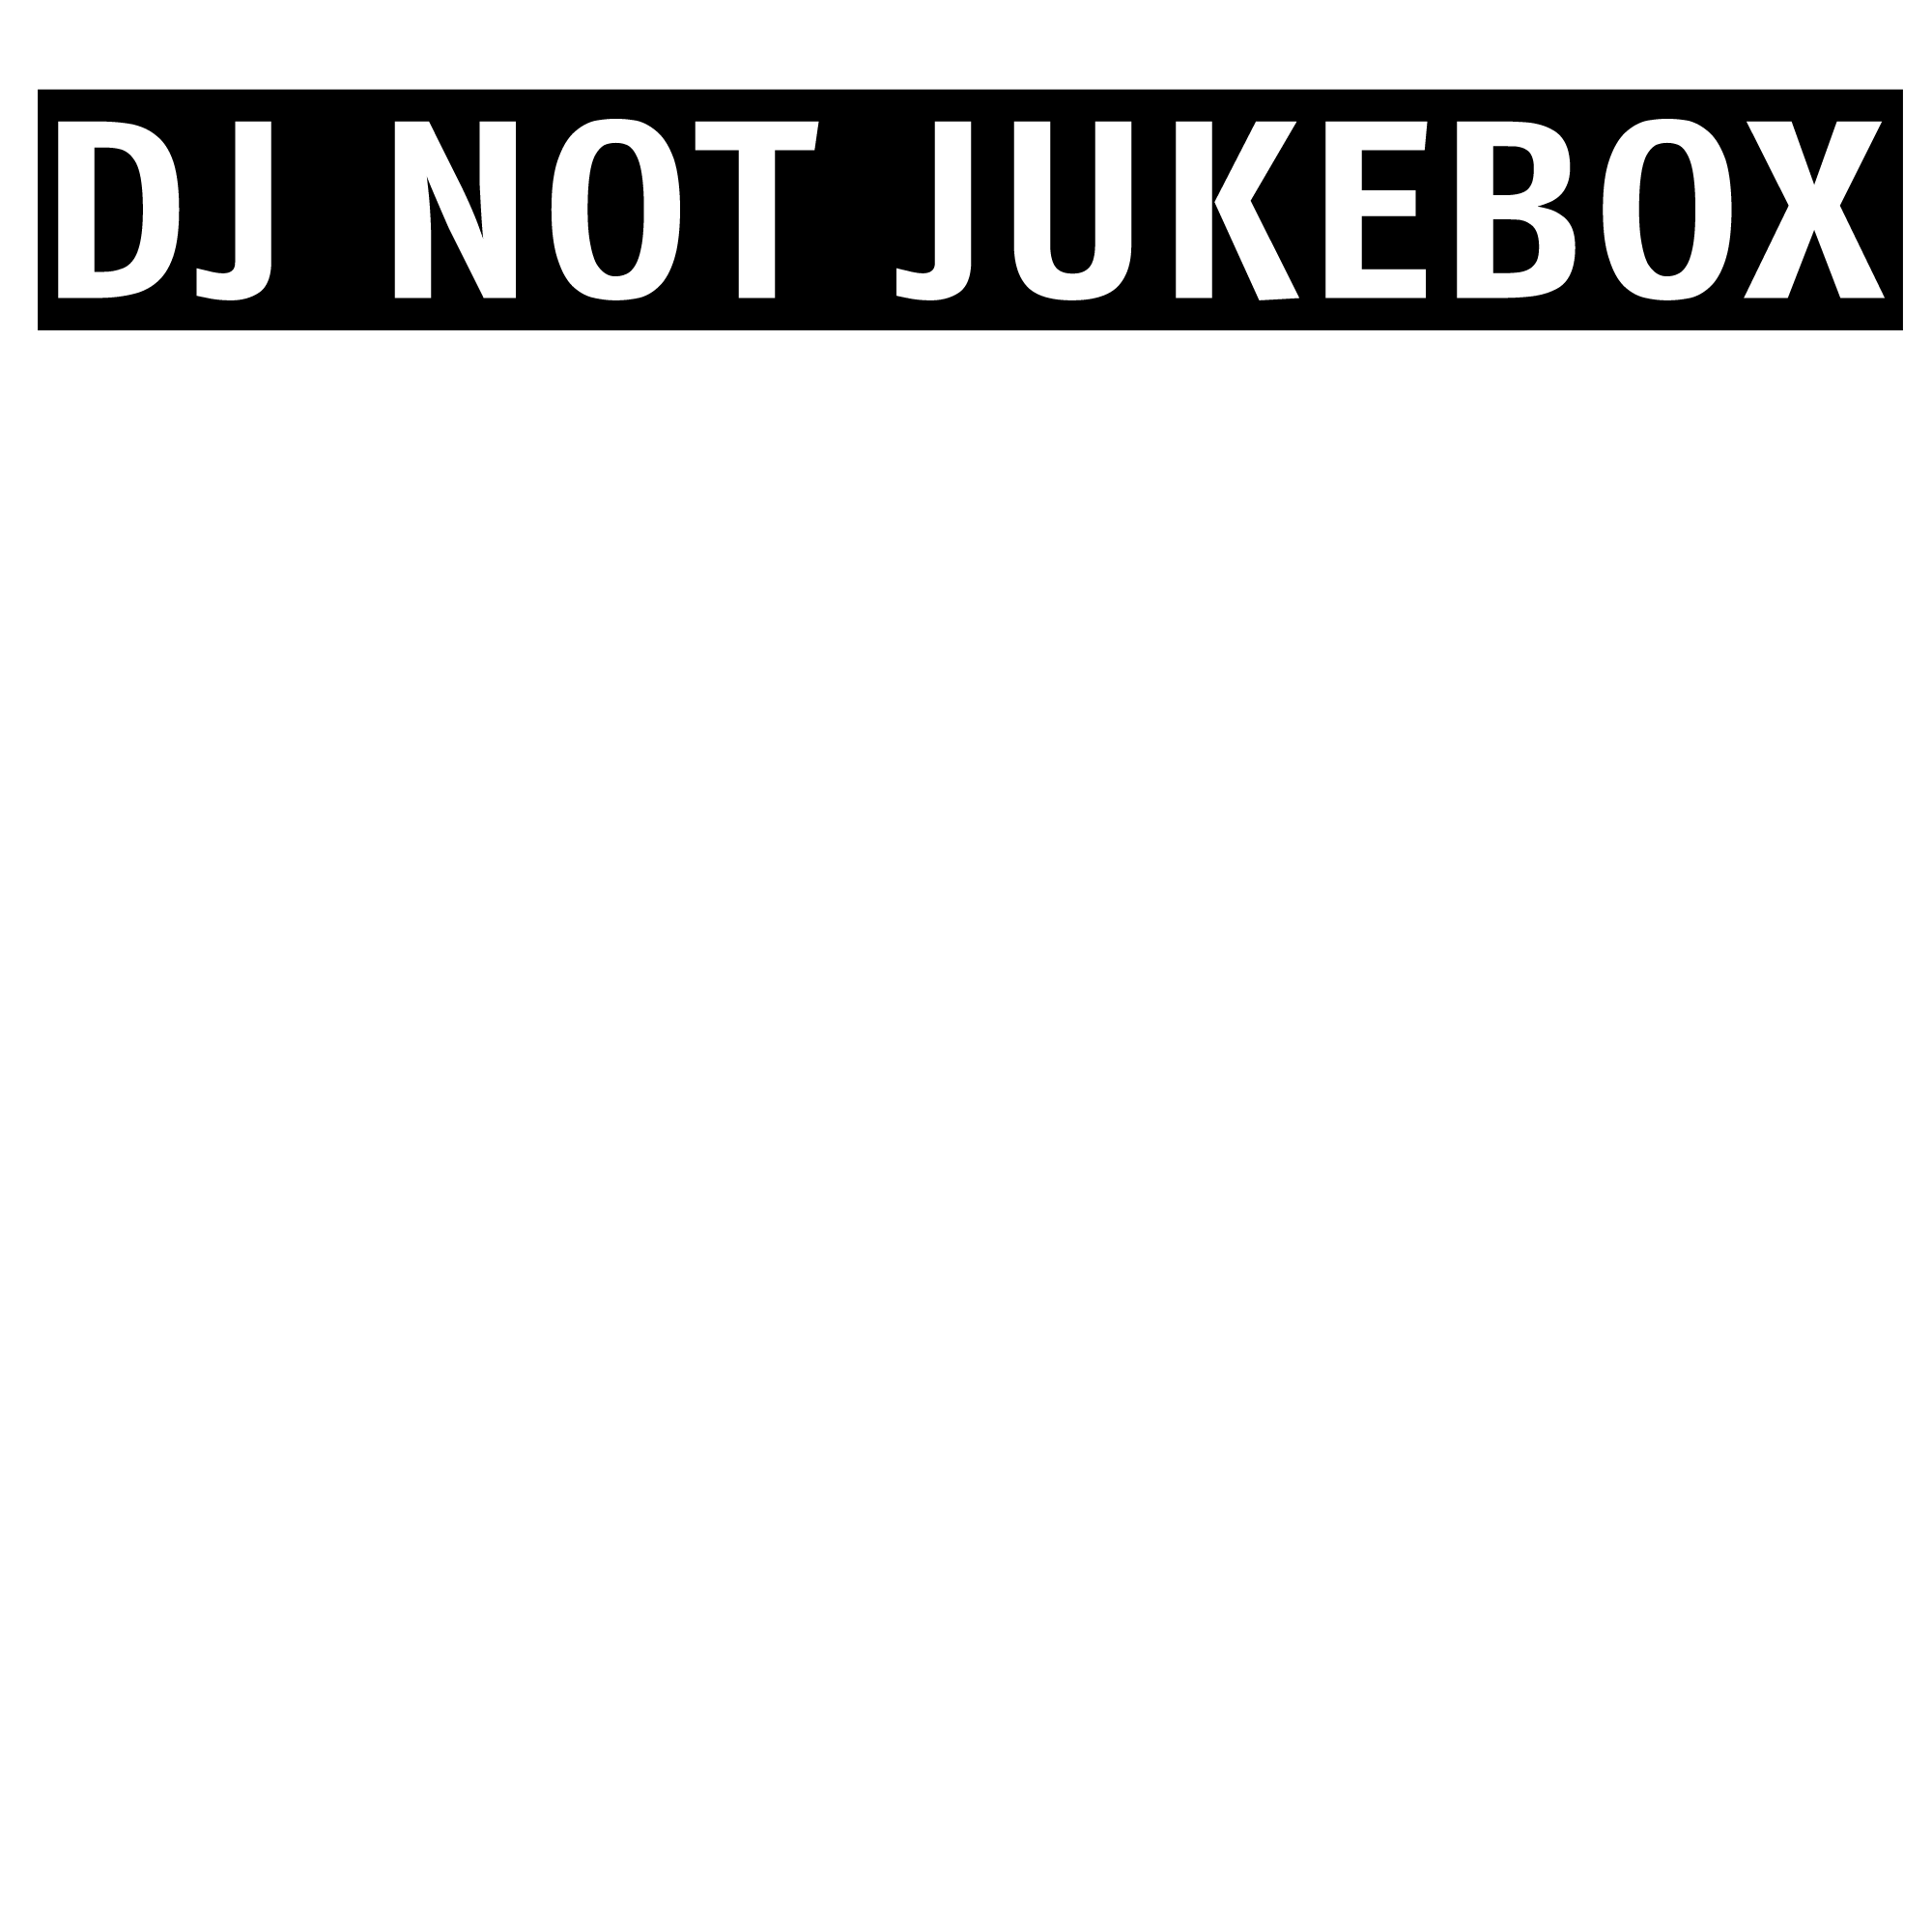 Not Jukebox